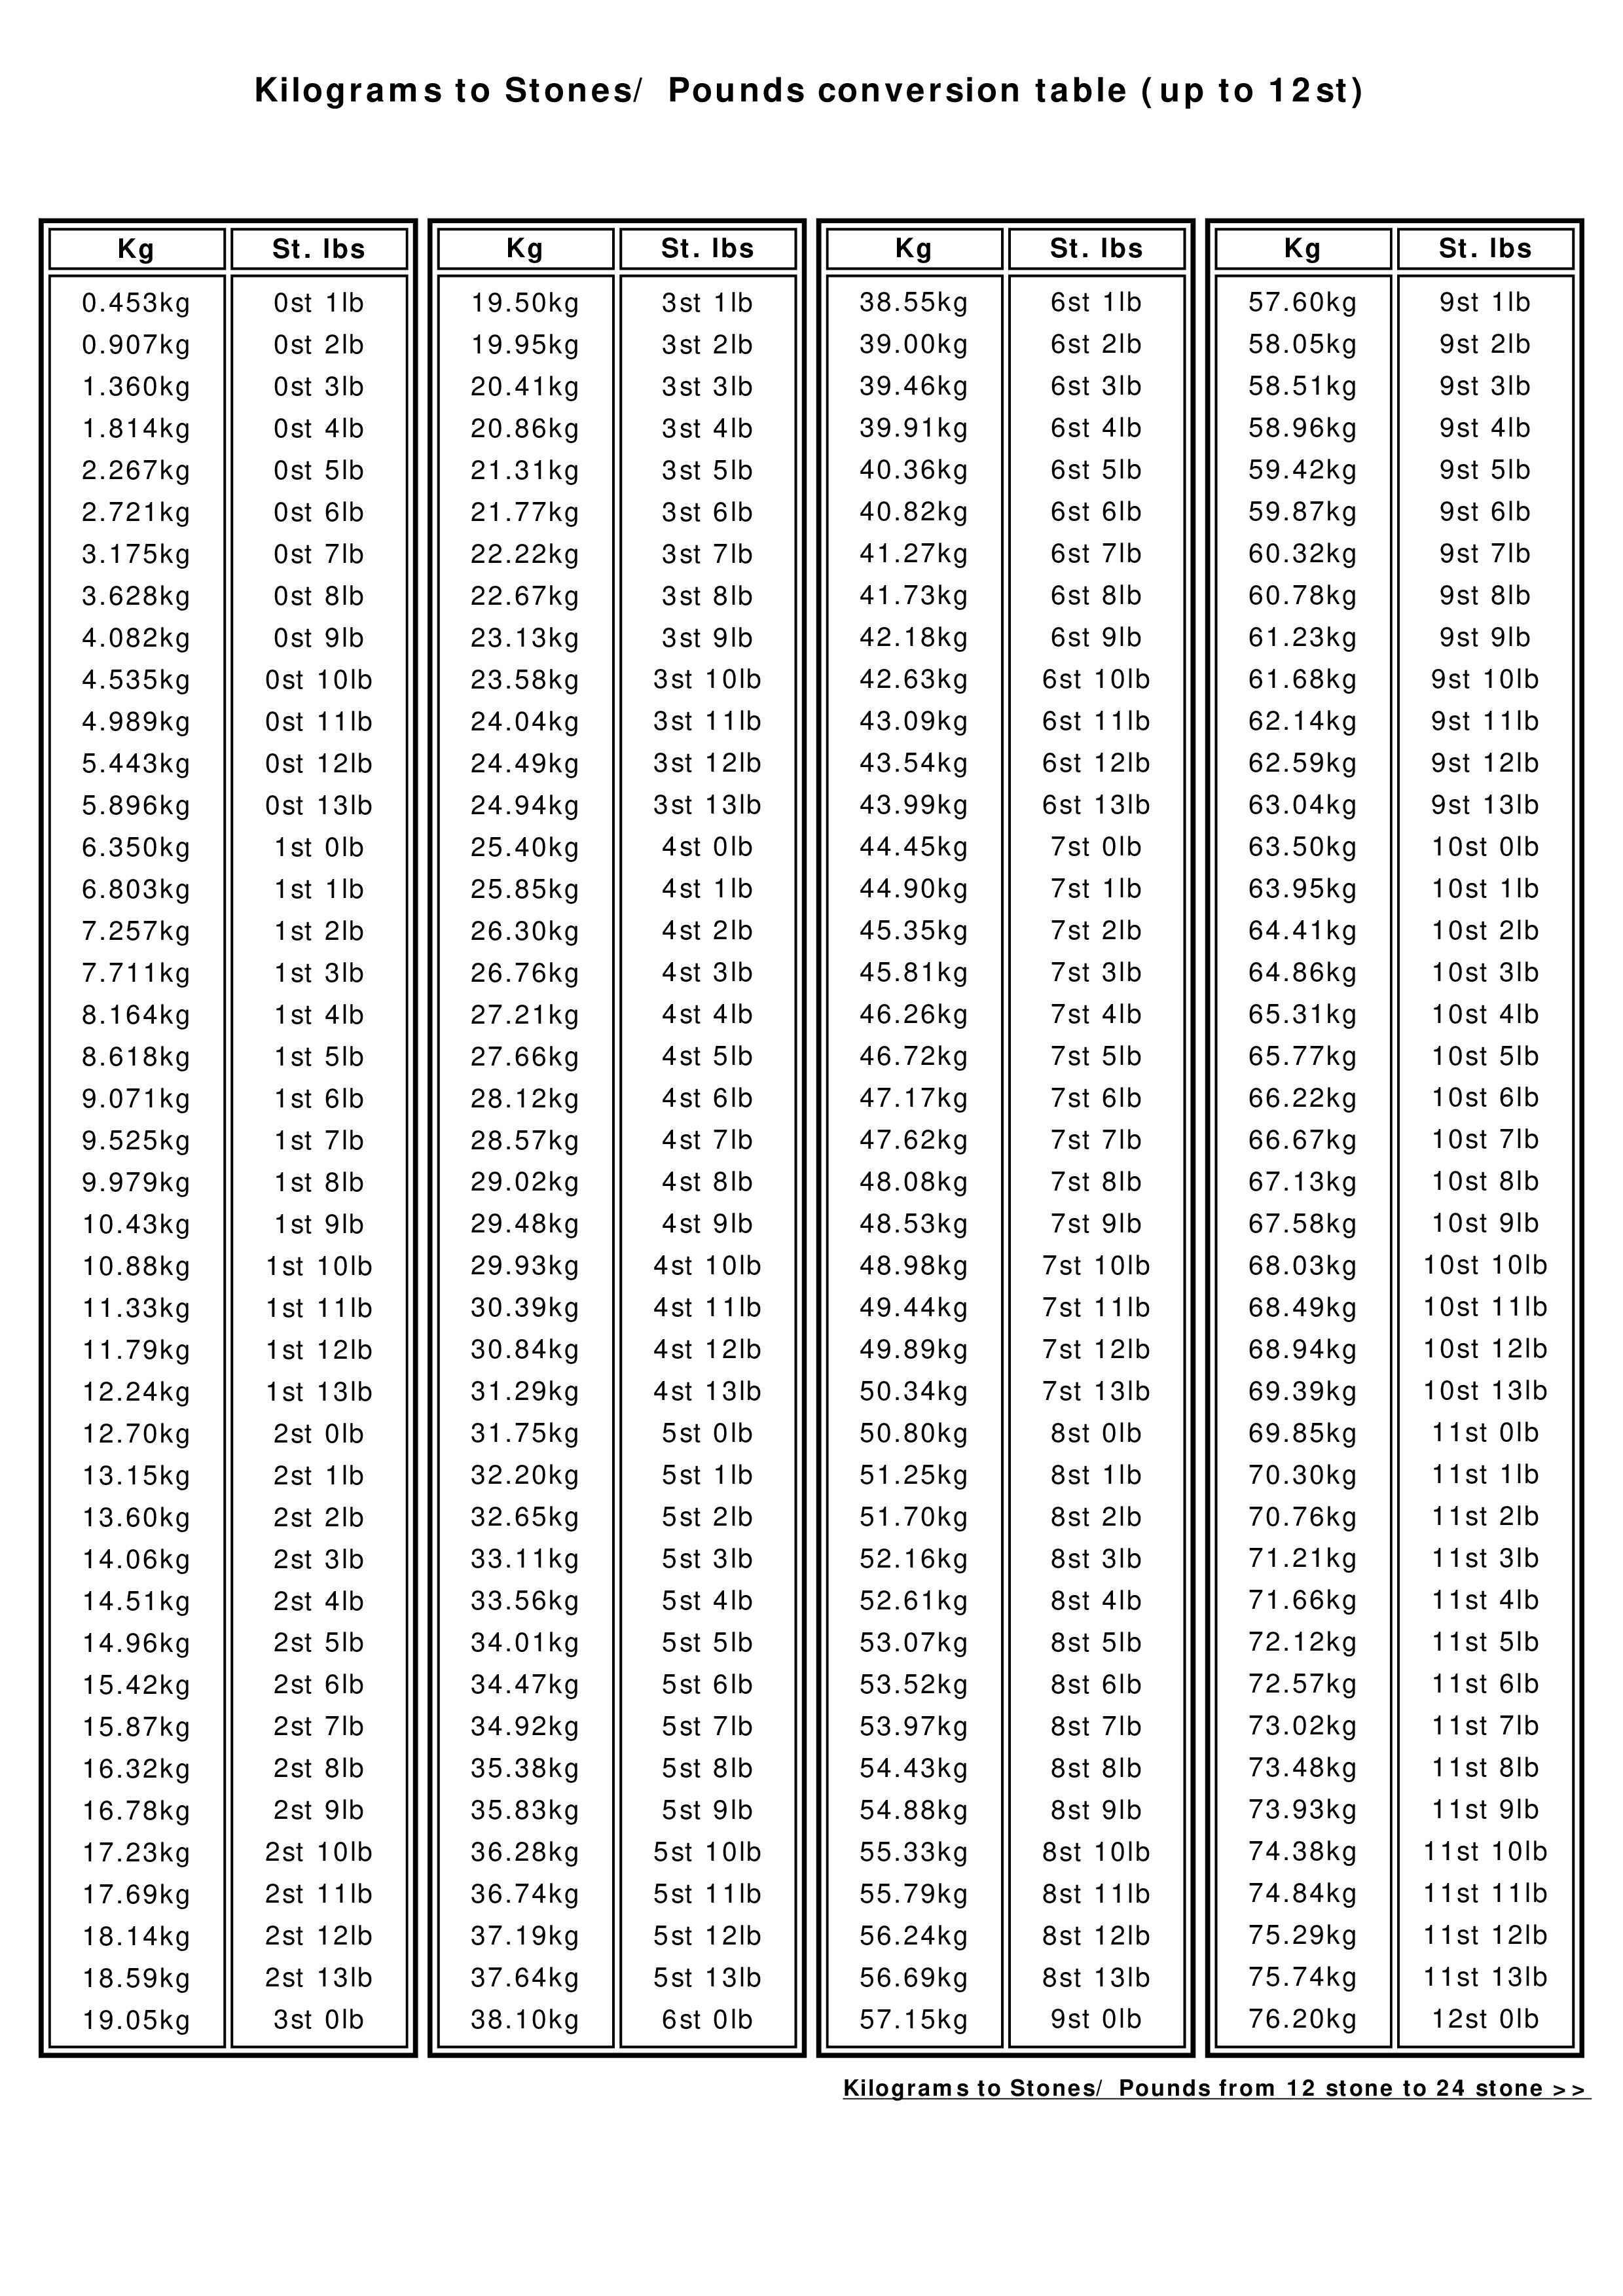 66 Math Table For Measurements